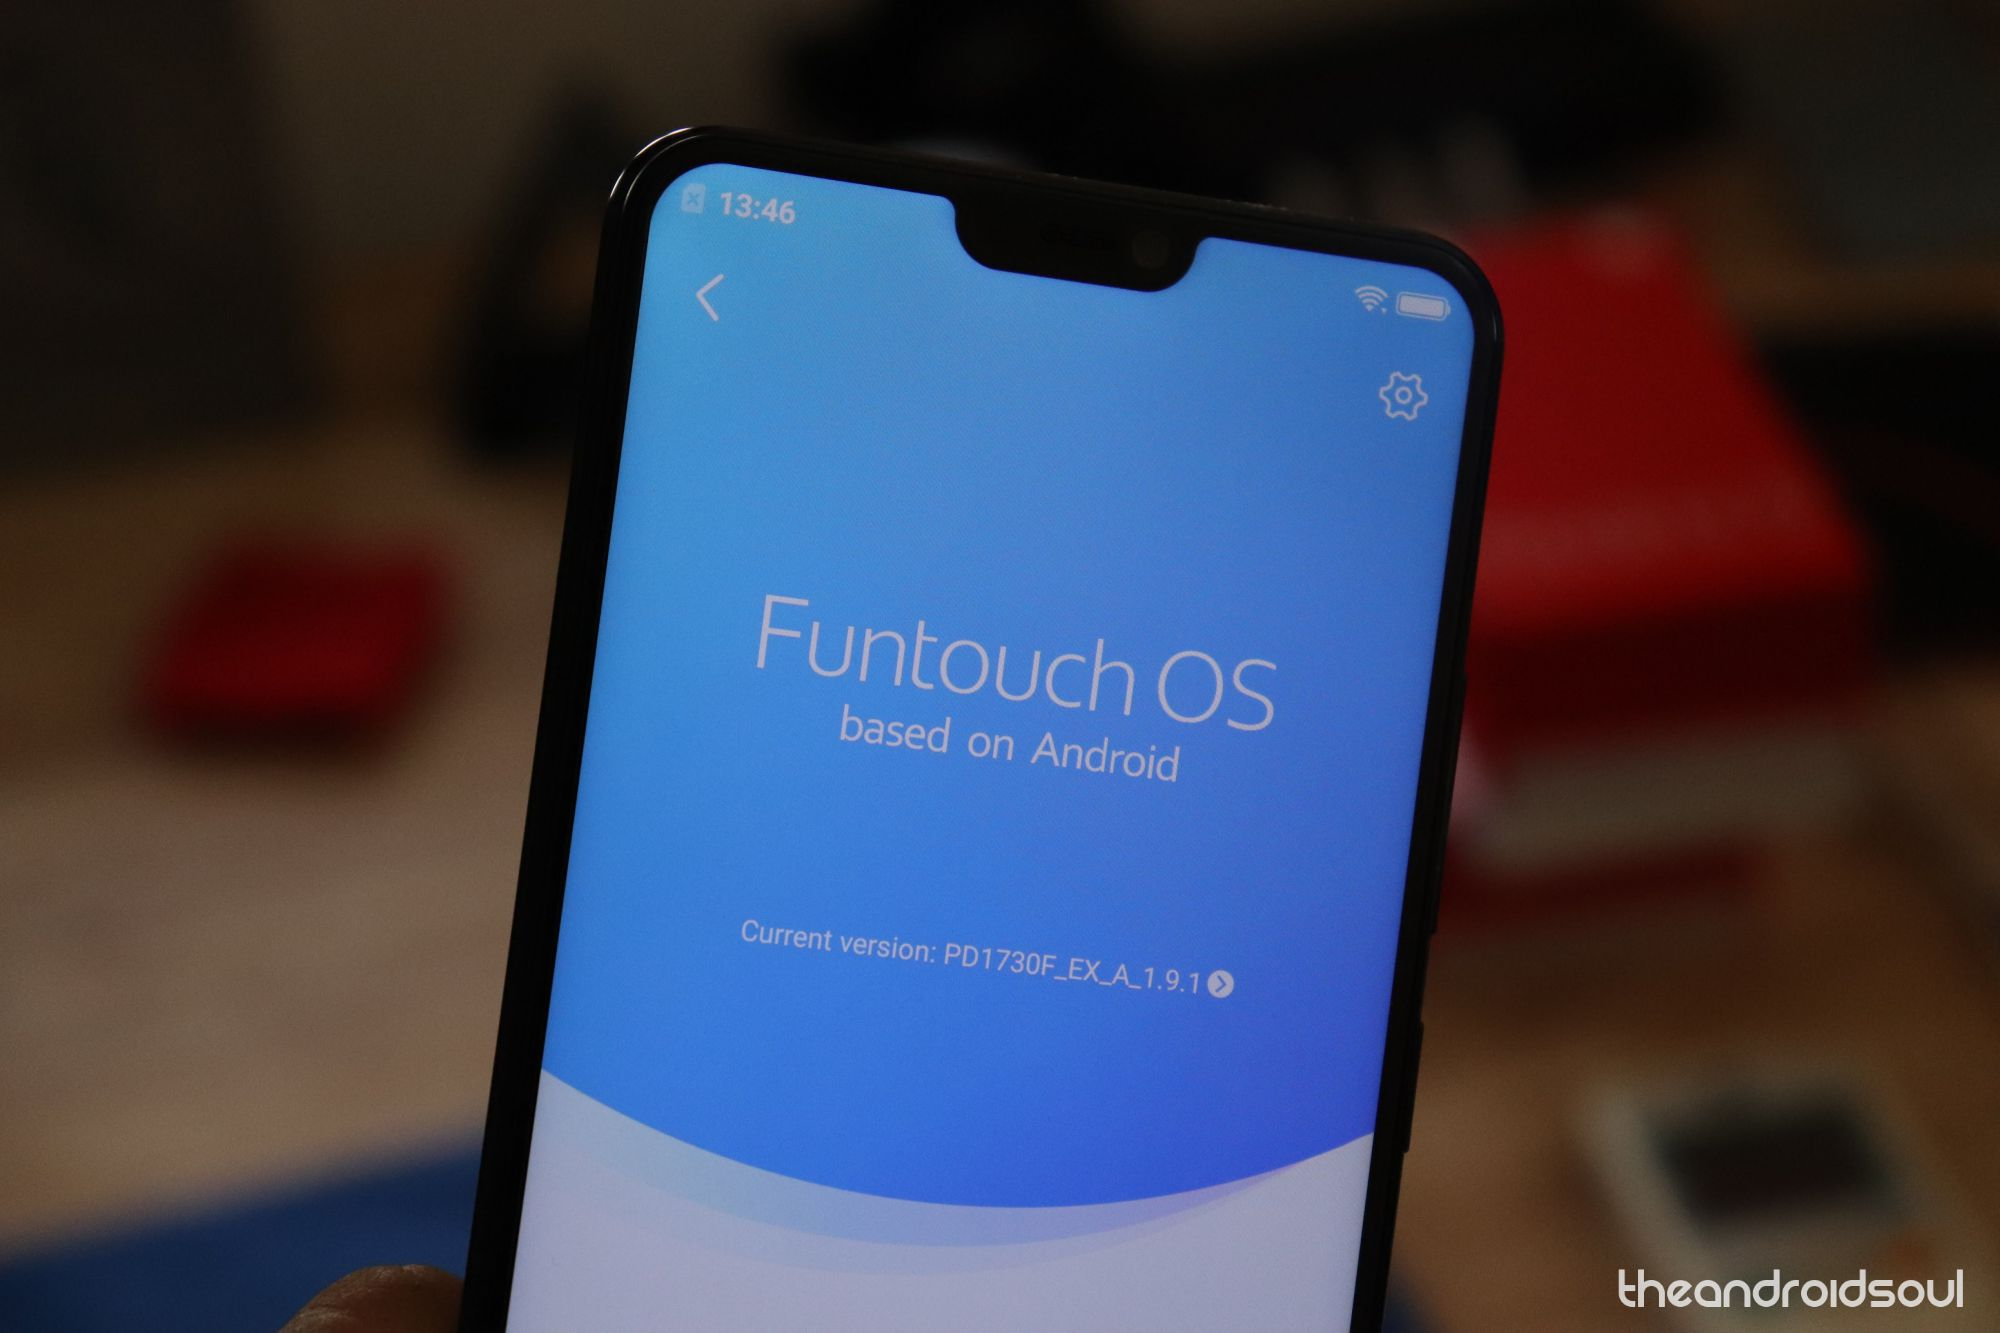 Vivo V9 Update 197 OTA Improves Stability Of Camera Operation